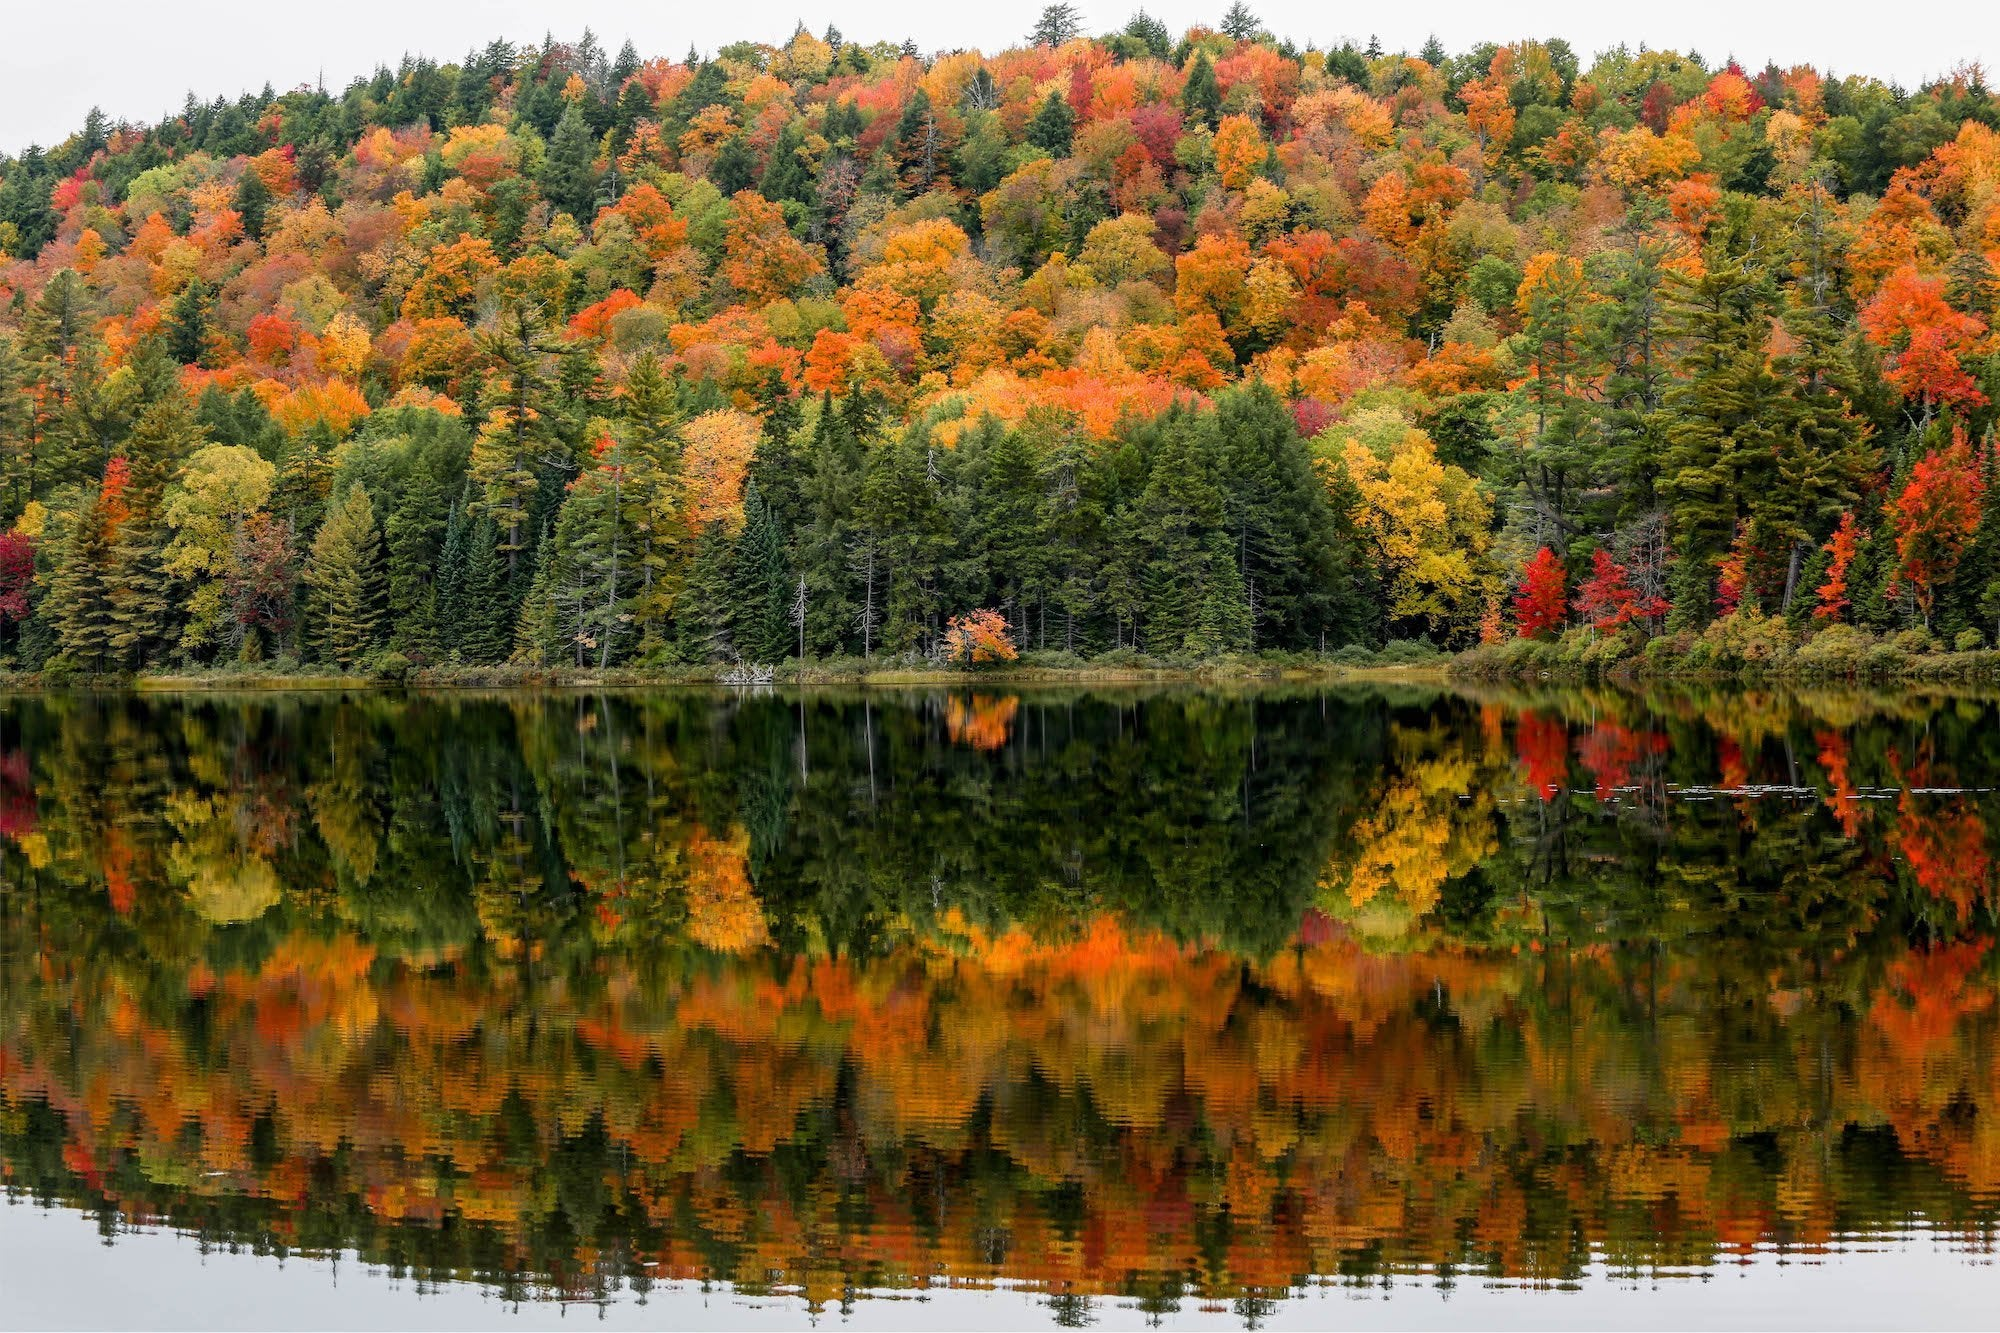 Autumn in the Adirondacks | Pure Adirondacks